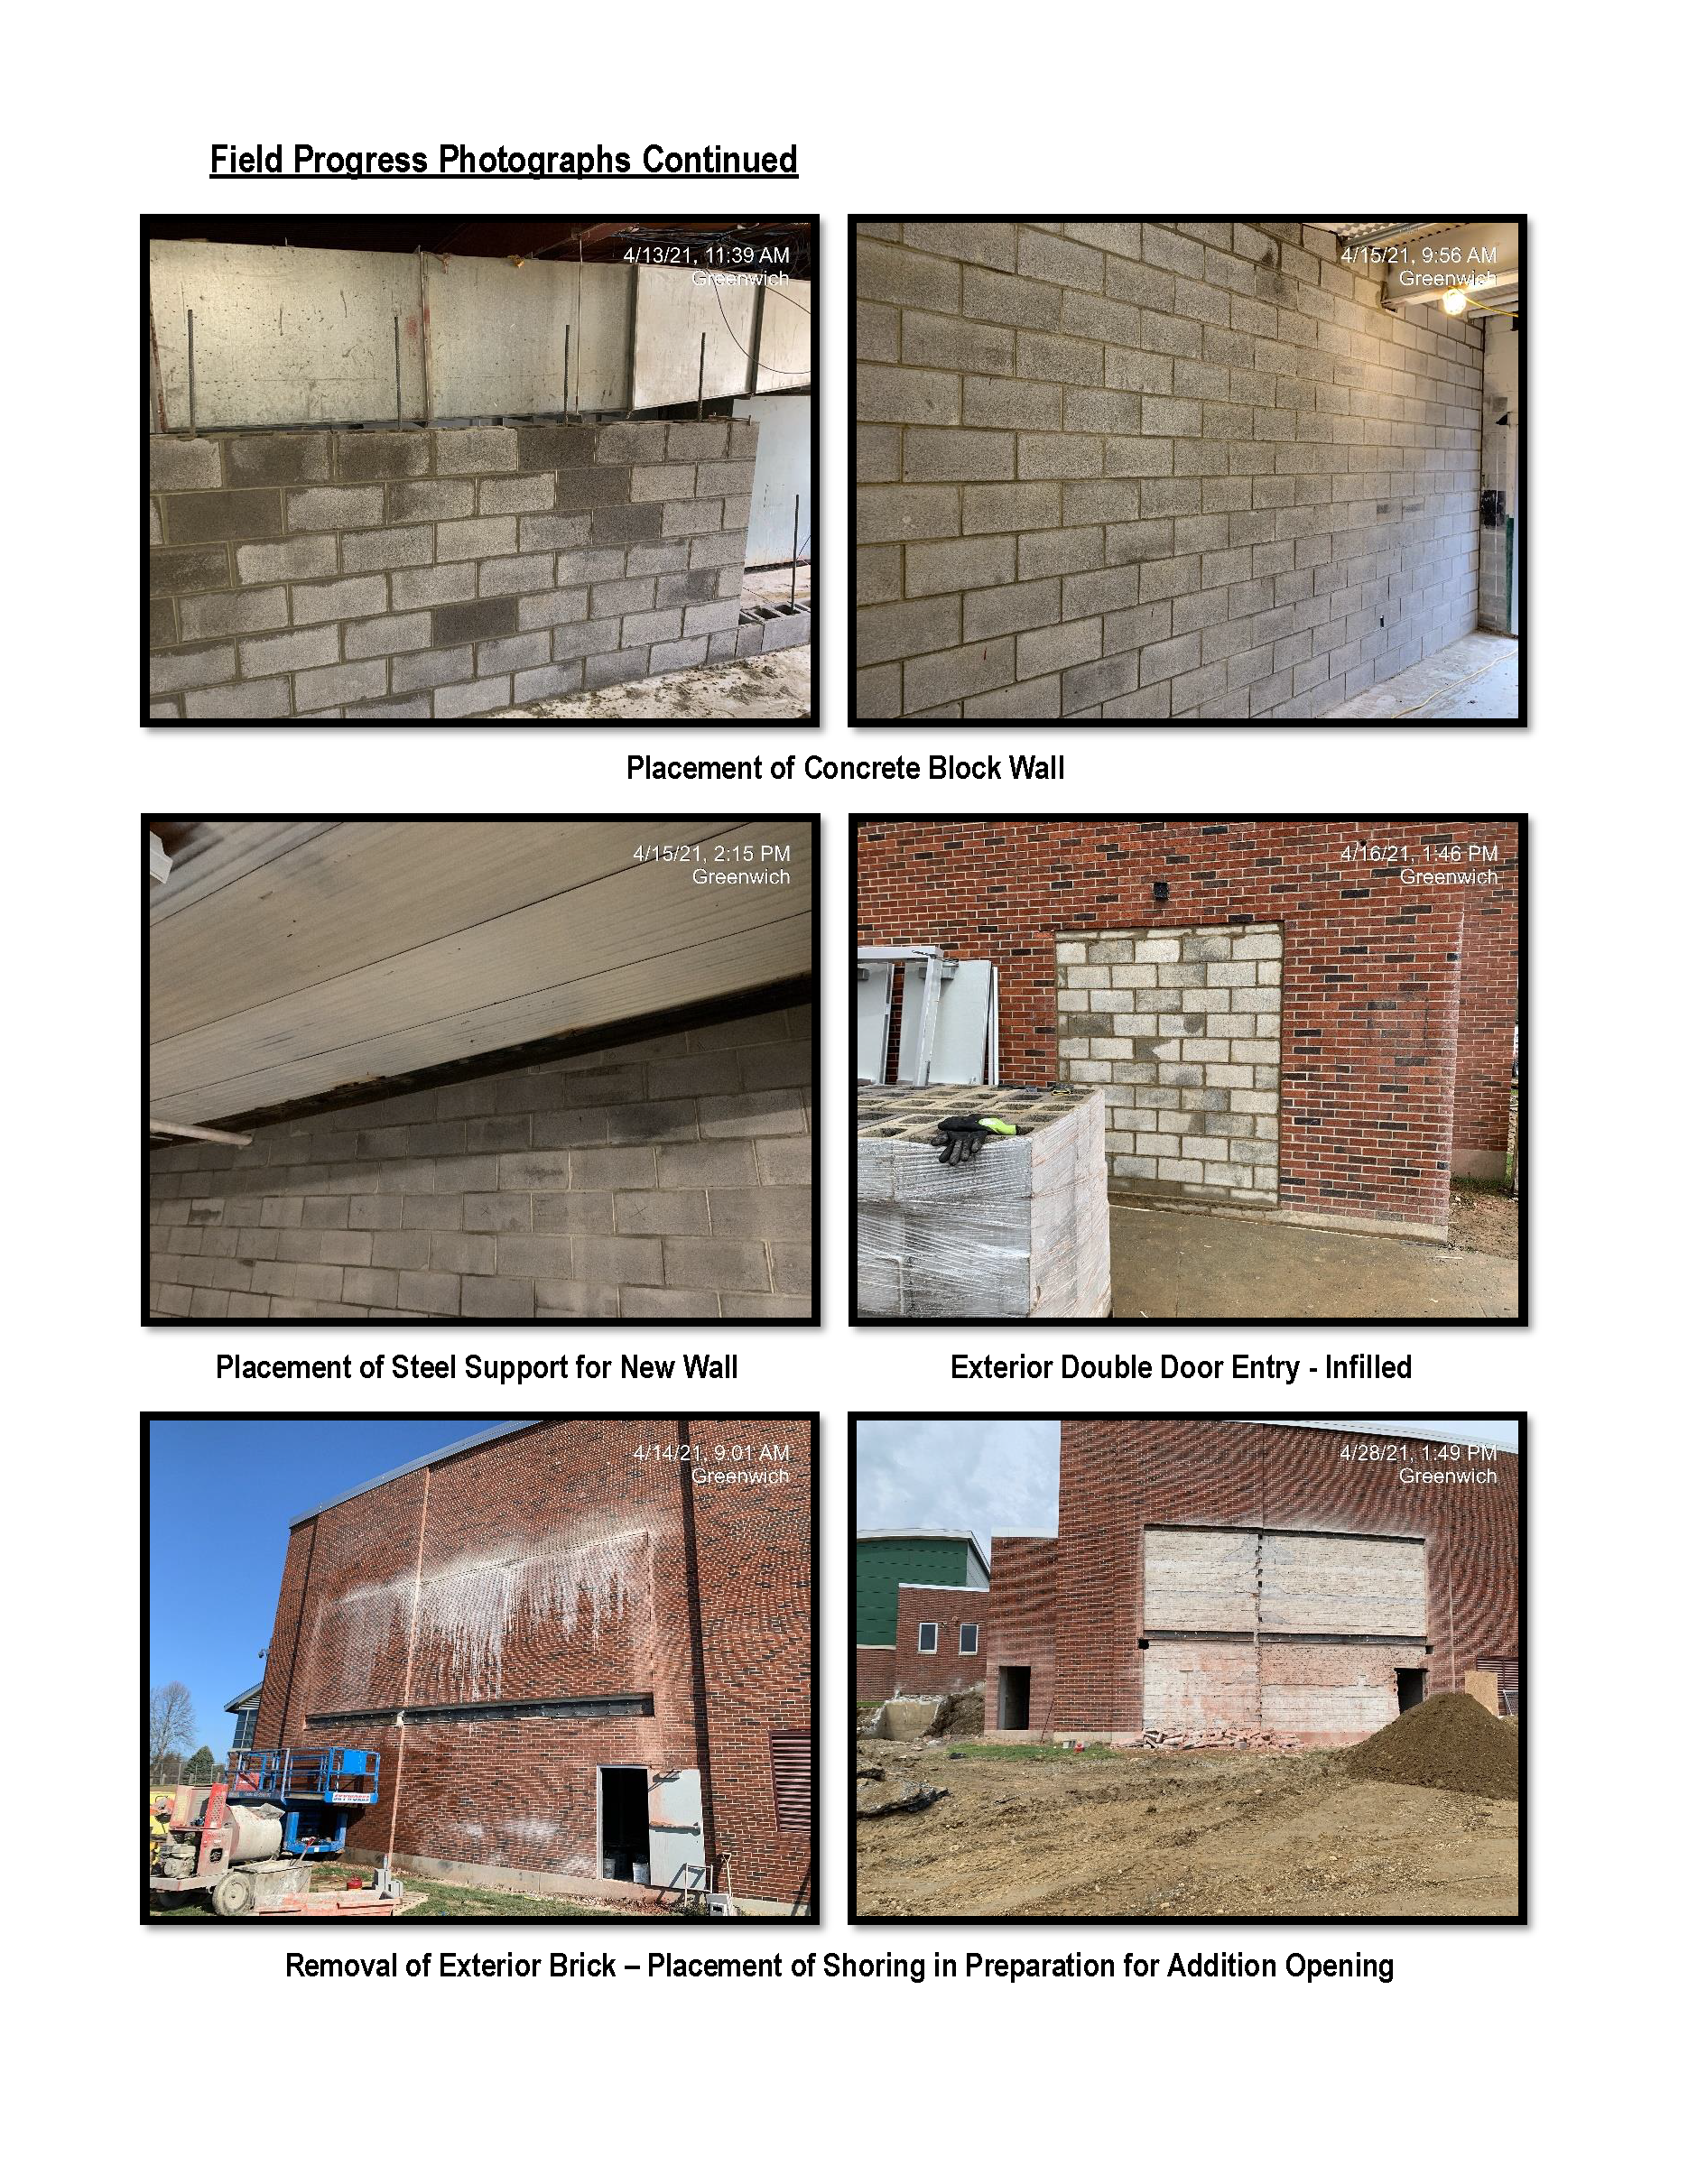 Capital Project Progress Report page 4 graphic